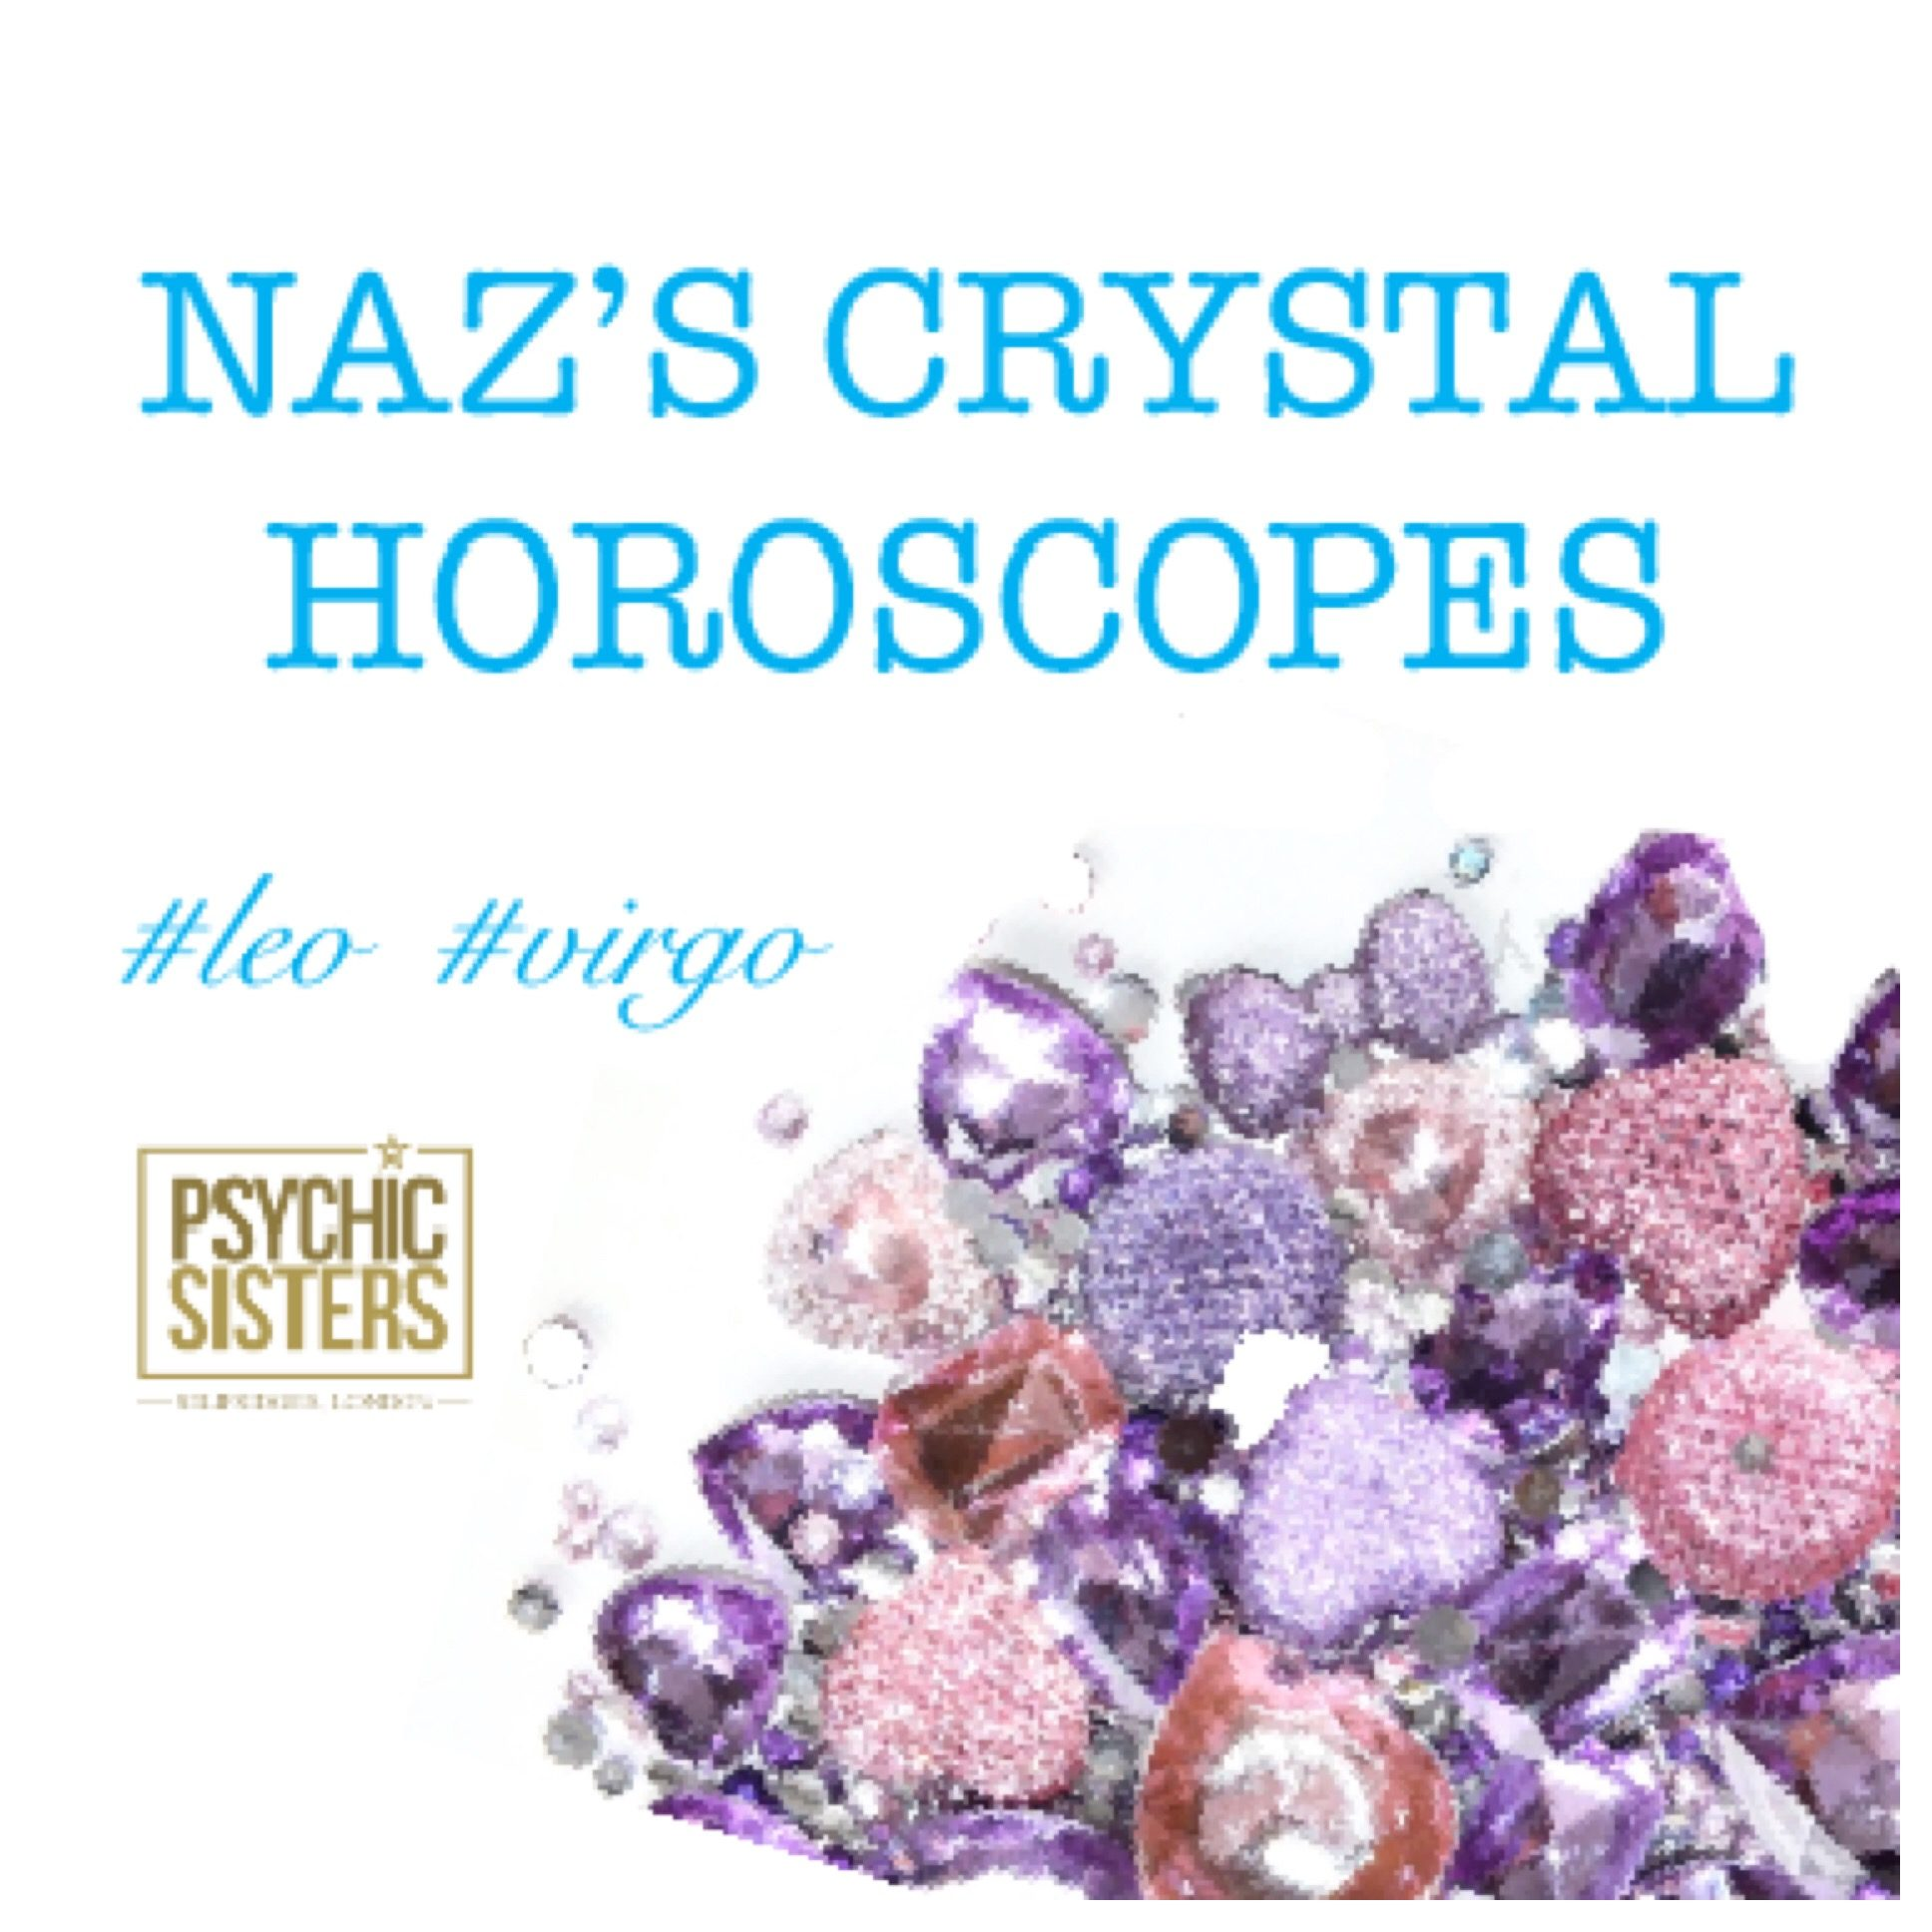 Naz's Crystal Horoscopes  4th - 10th February 2018